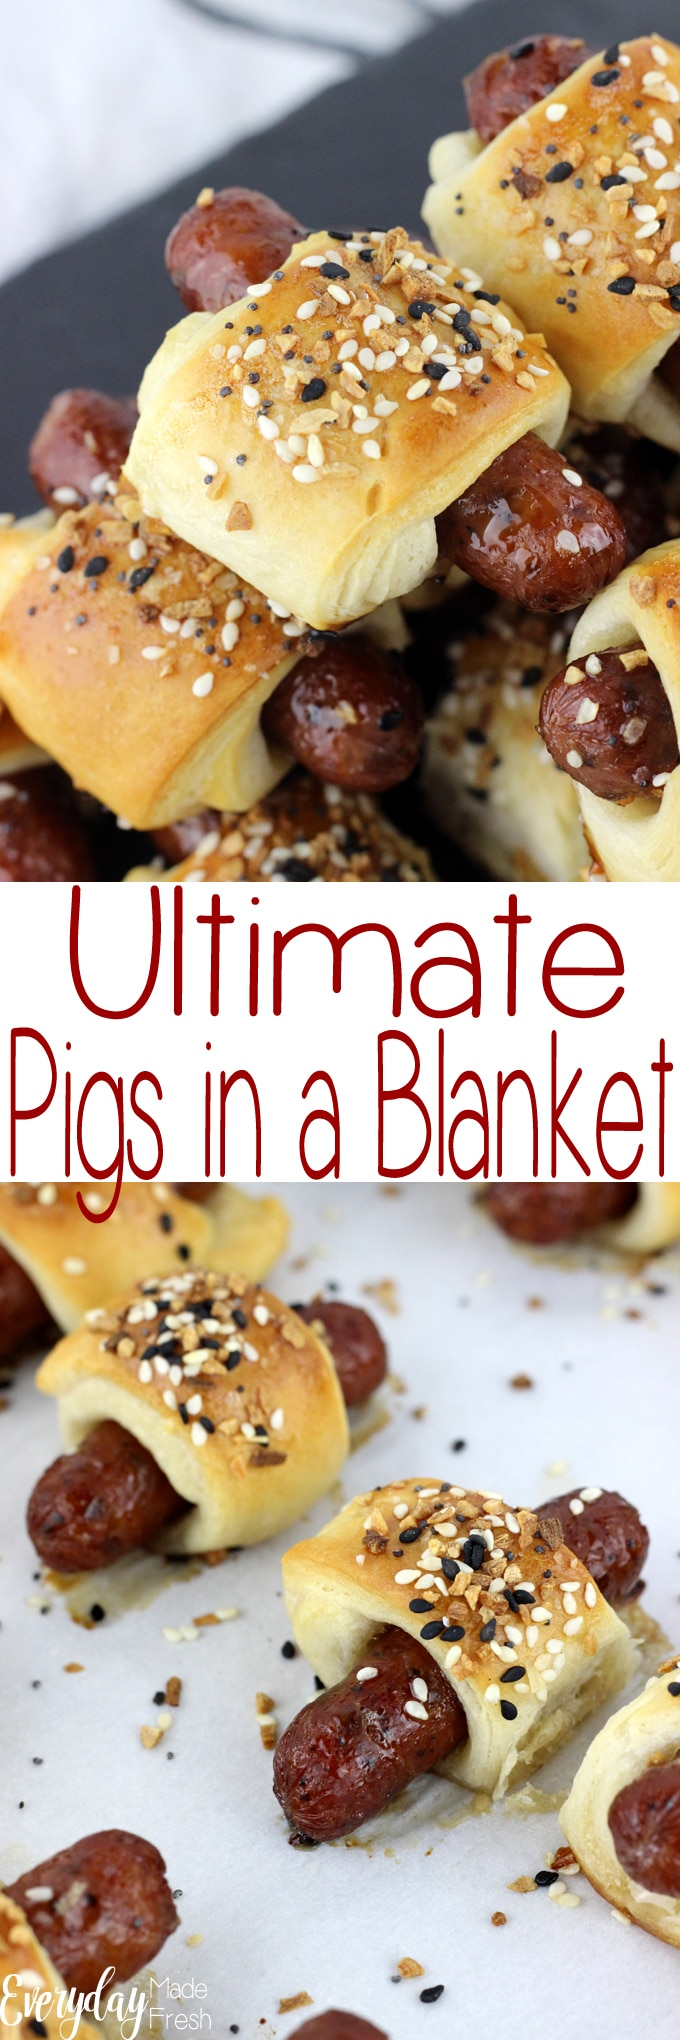 Nothing says appetizer quite like the traditional little sausages wrapped in dough. However, we've turned up the flavor with this updated version, Ultimate Pigs in a Blanket! | EverydayMadeFresh.com